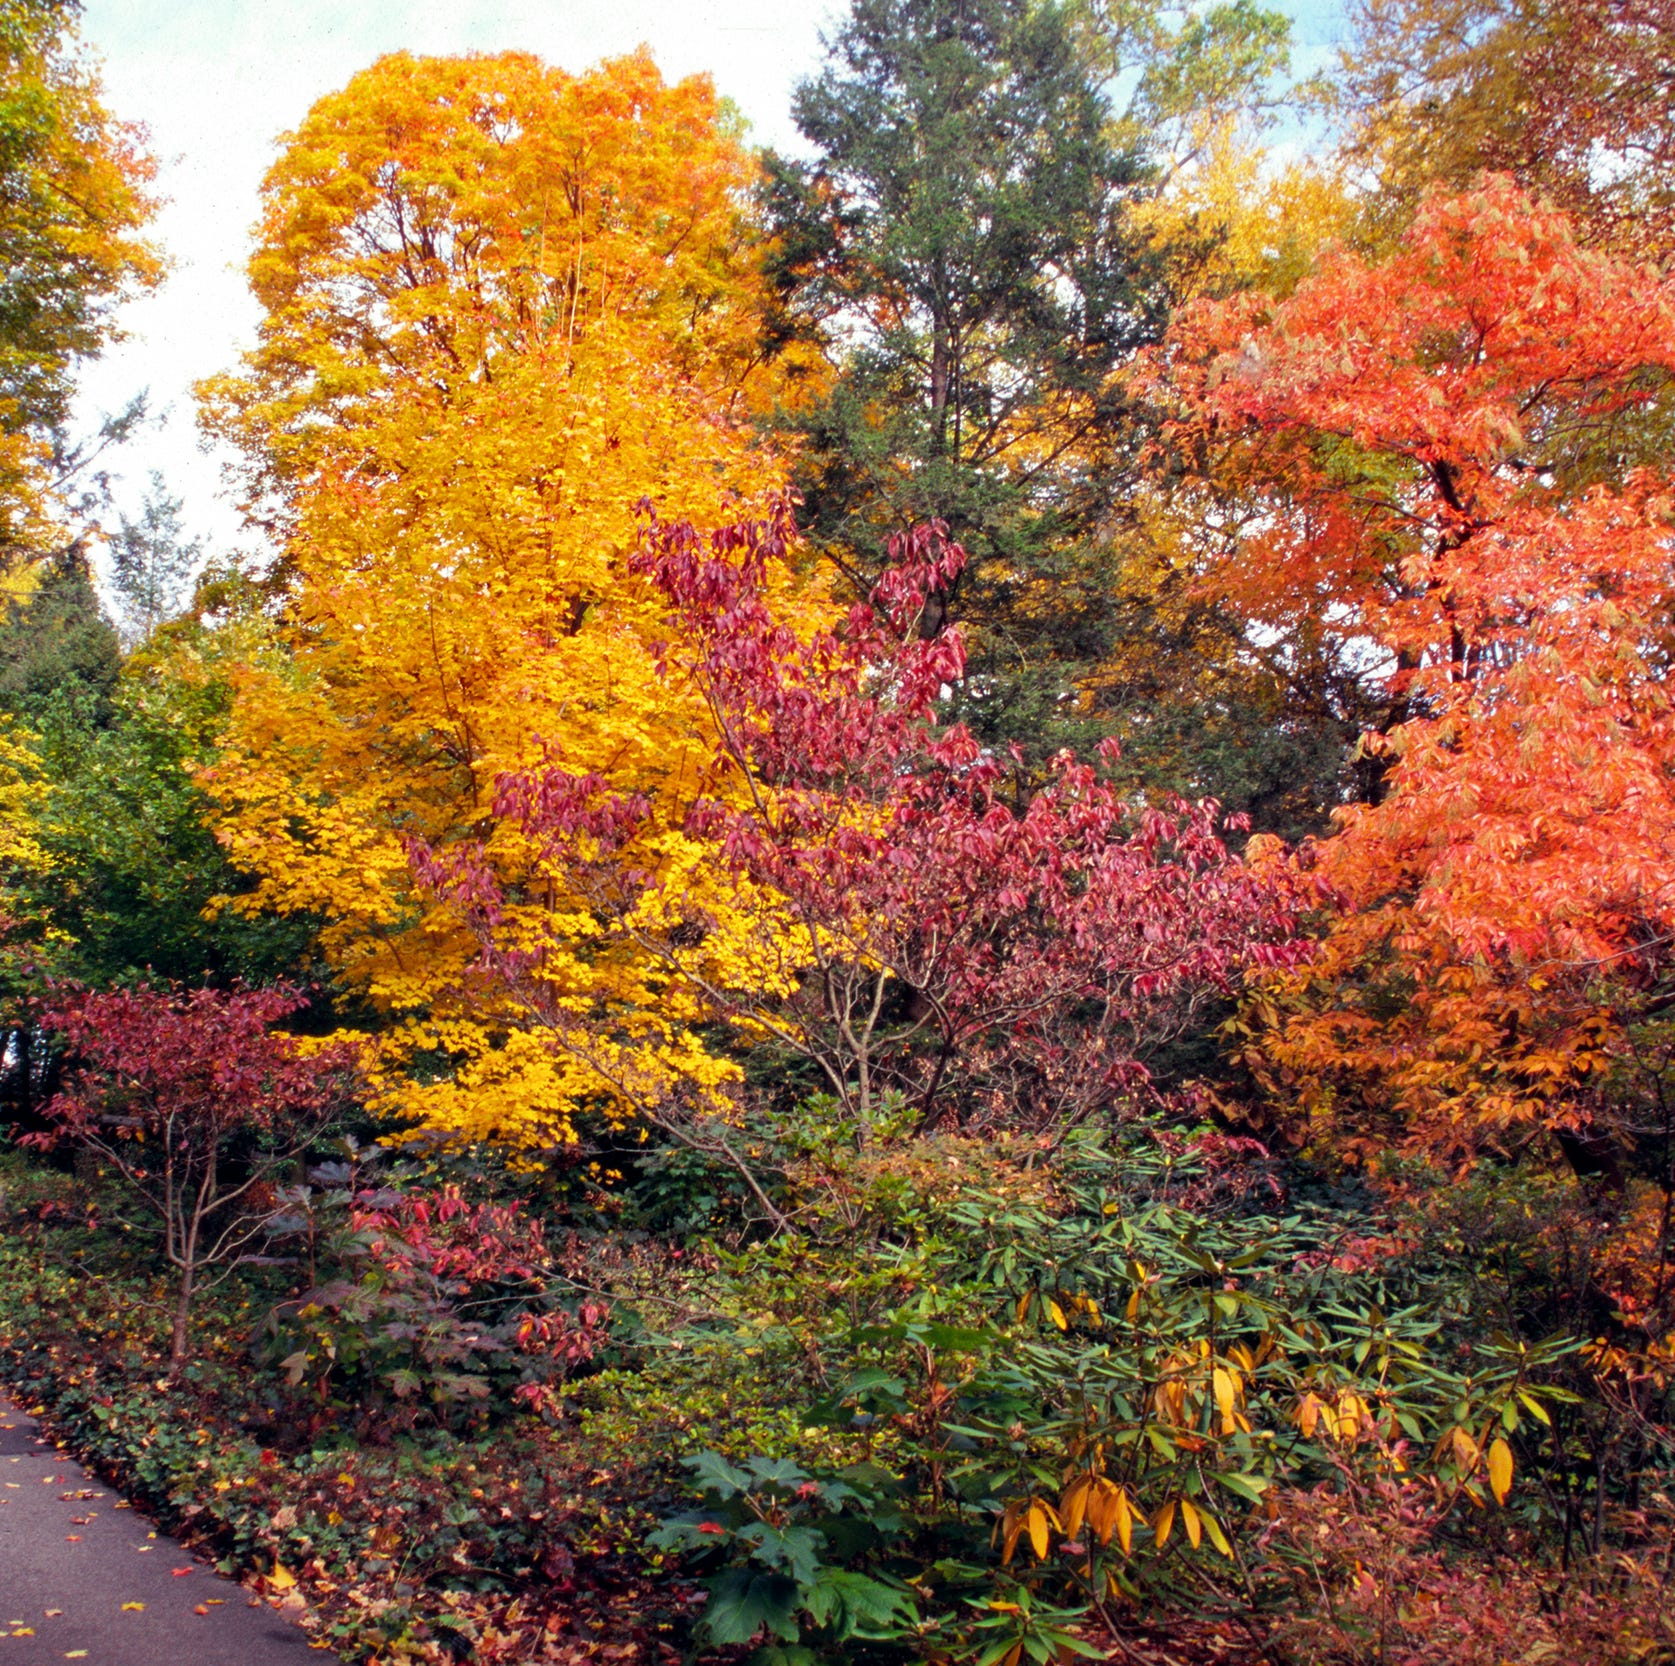 9 ways to rejoice in fall color in Delaware when it peaks the third week of October